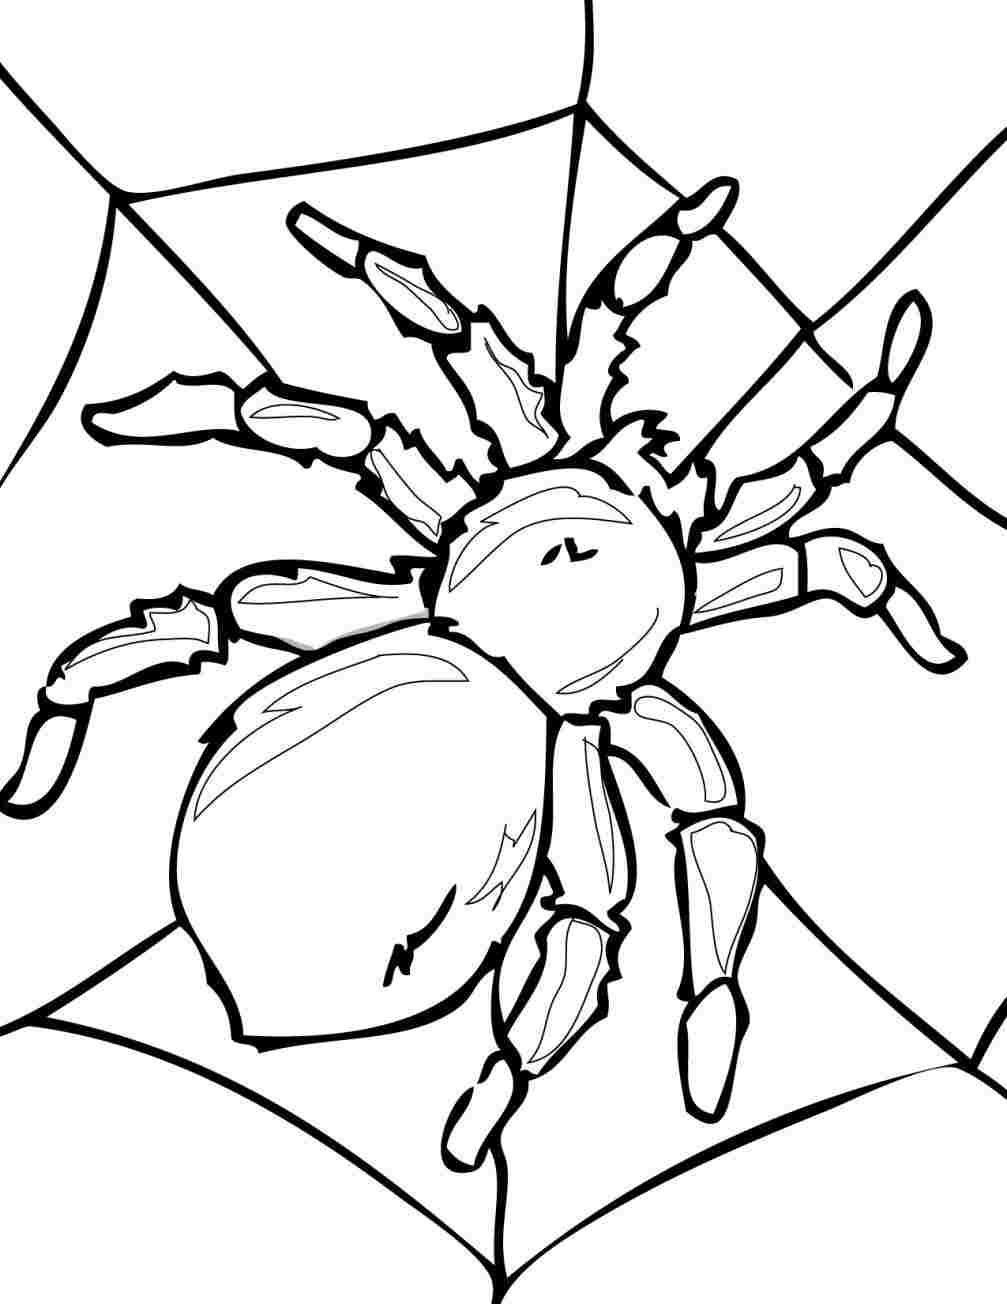 minecraft spider drawing minecraft spider drawing free download on clipartmag drawing minecraft spider